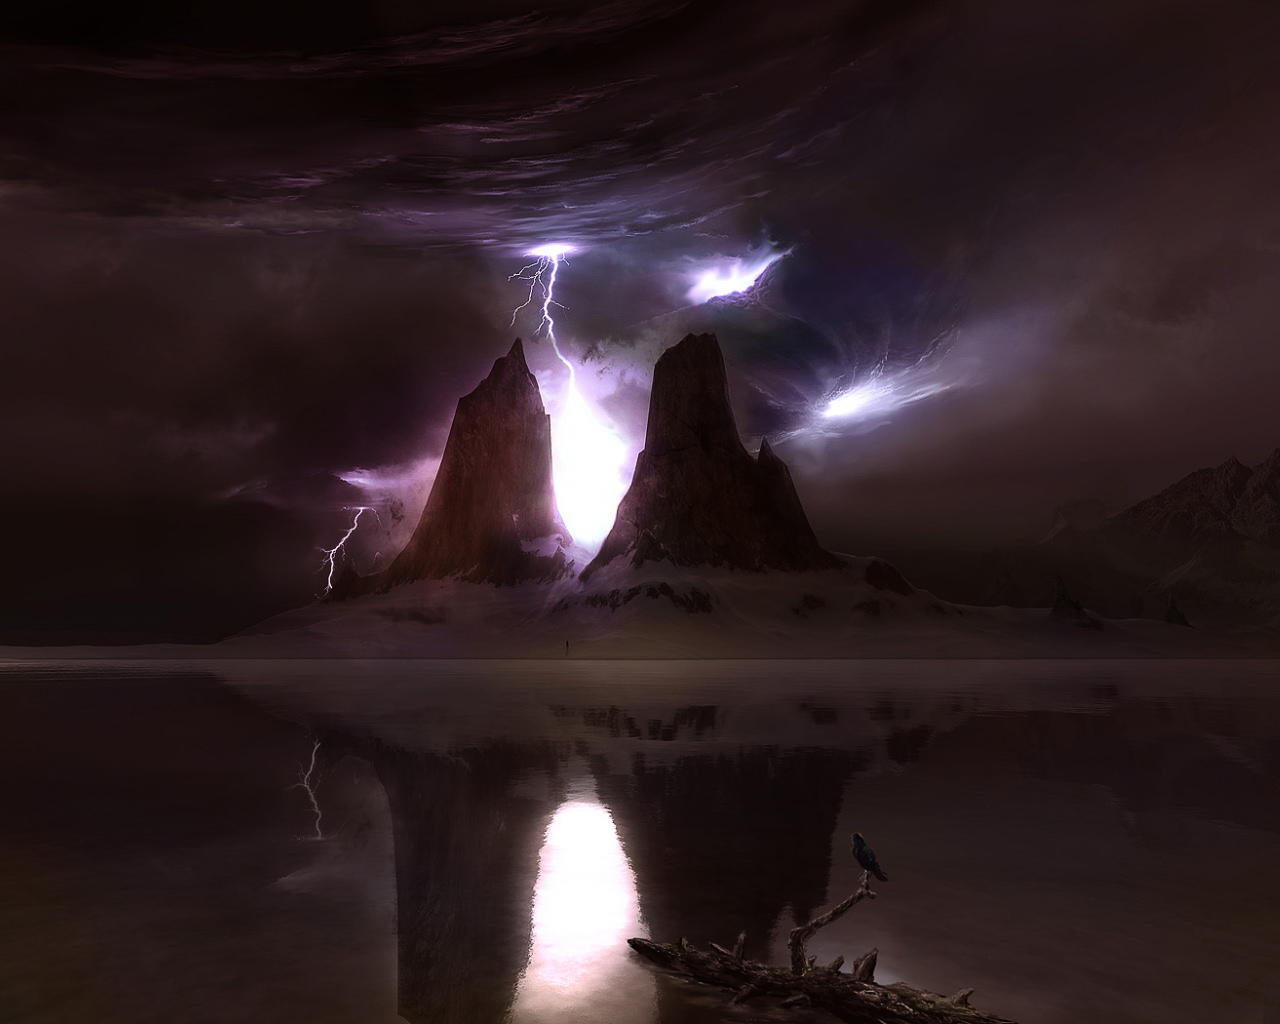 Stormy sky and lightning on a mysterious planet